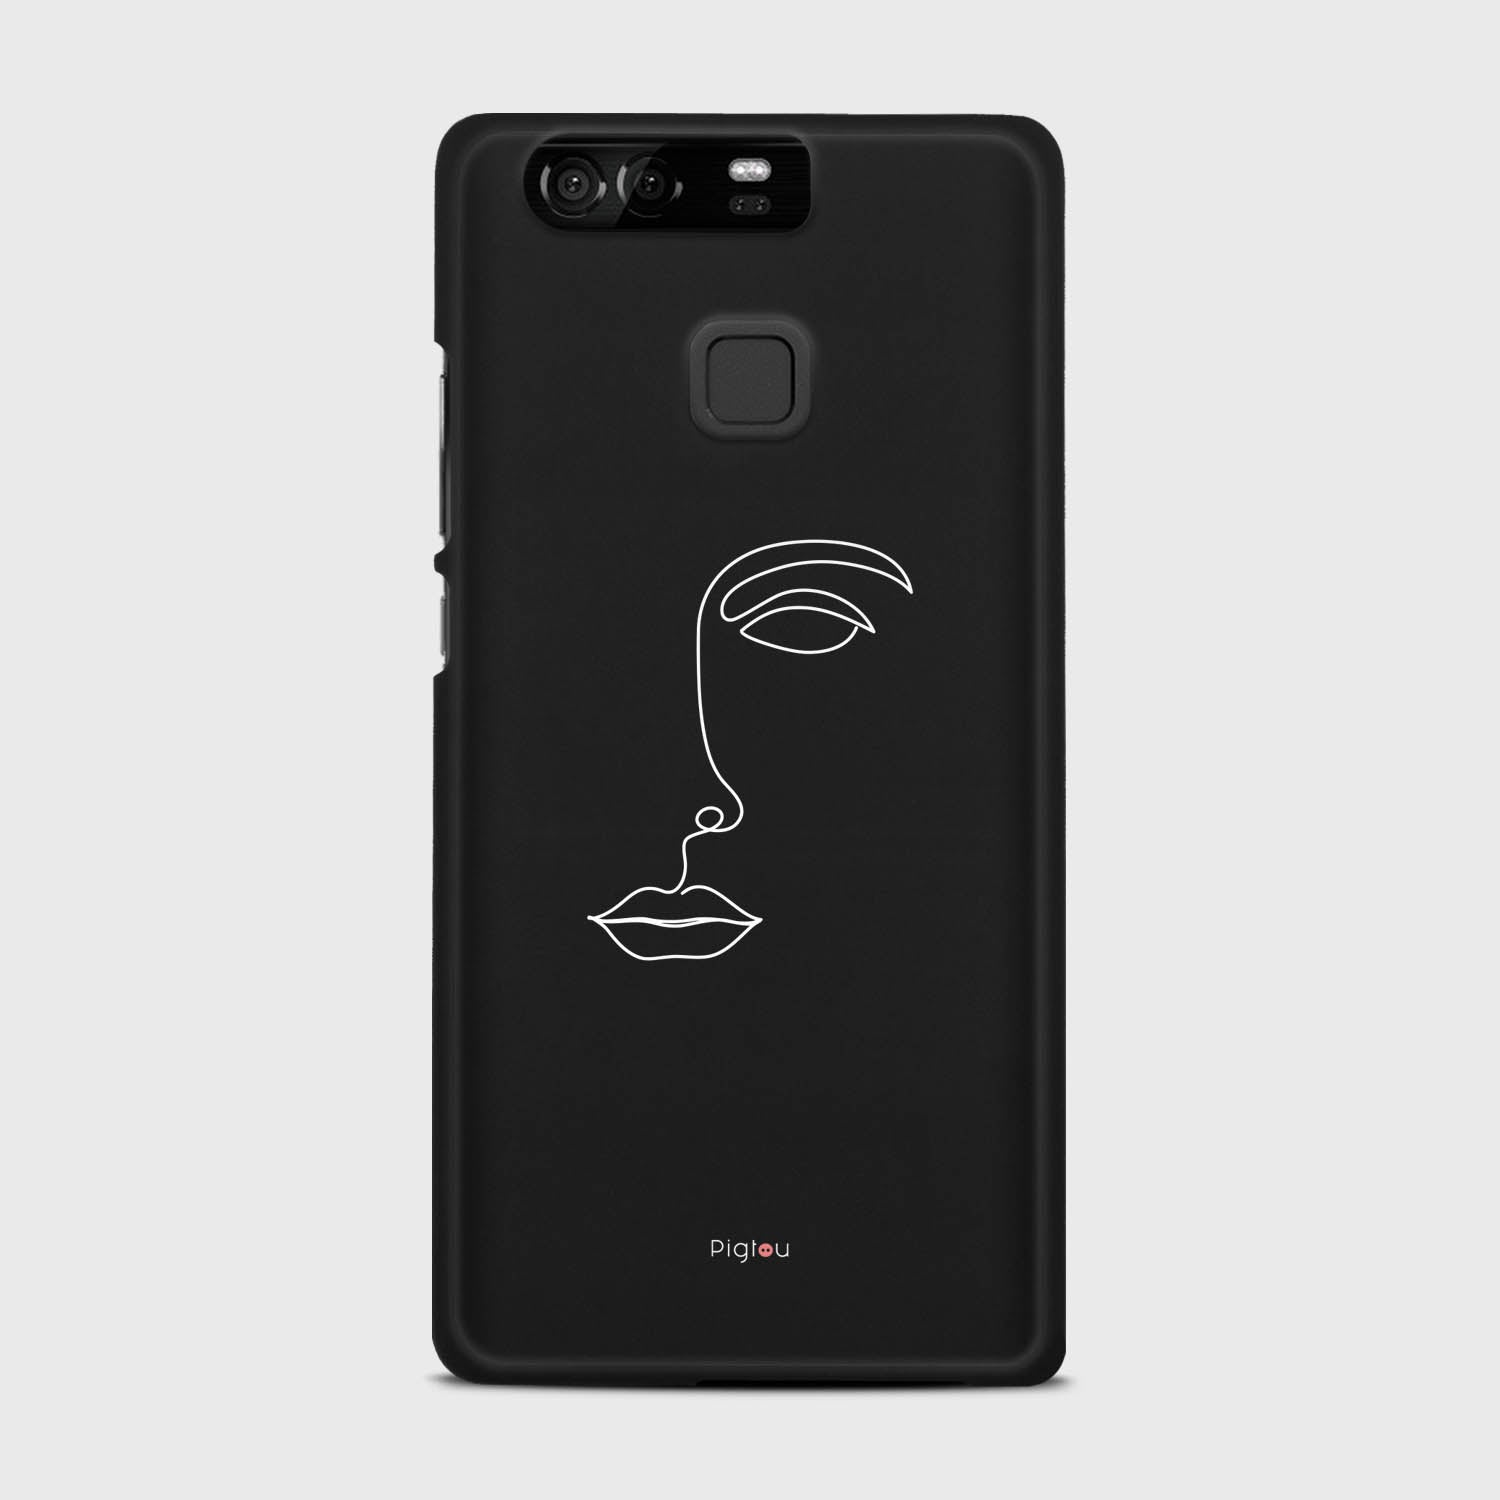 SILHOUETTE FACE Huawei P9 cases | Pigtou